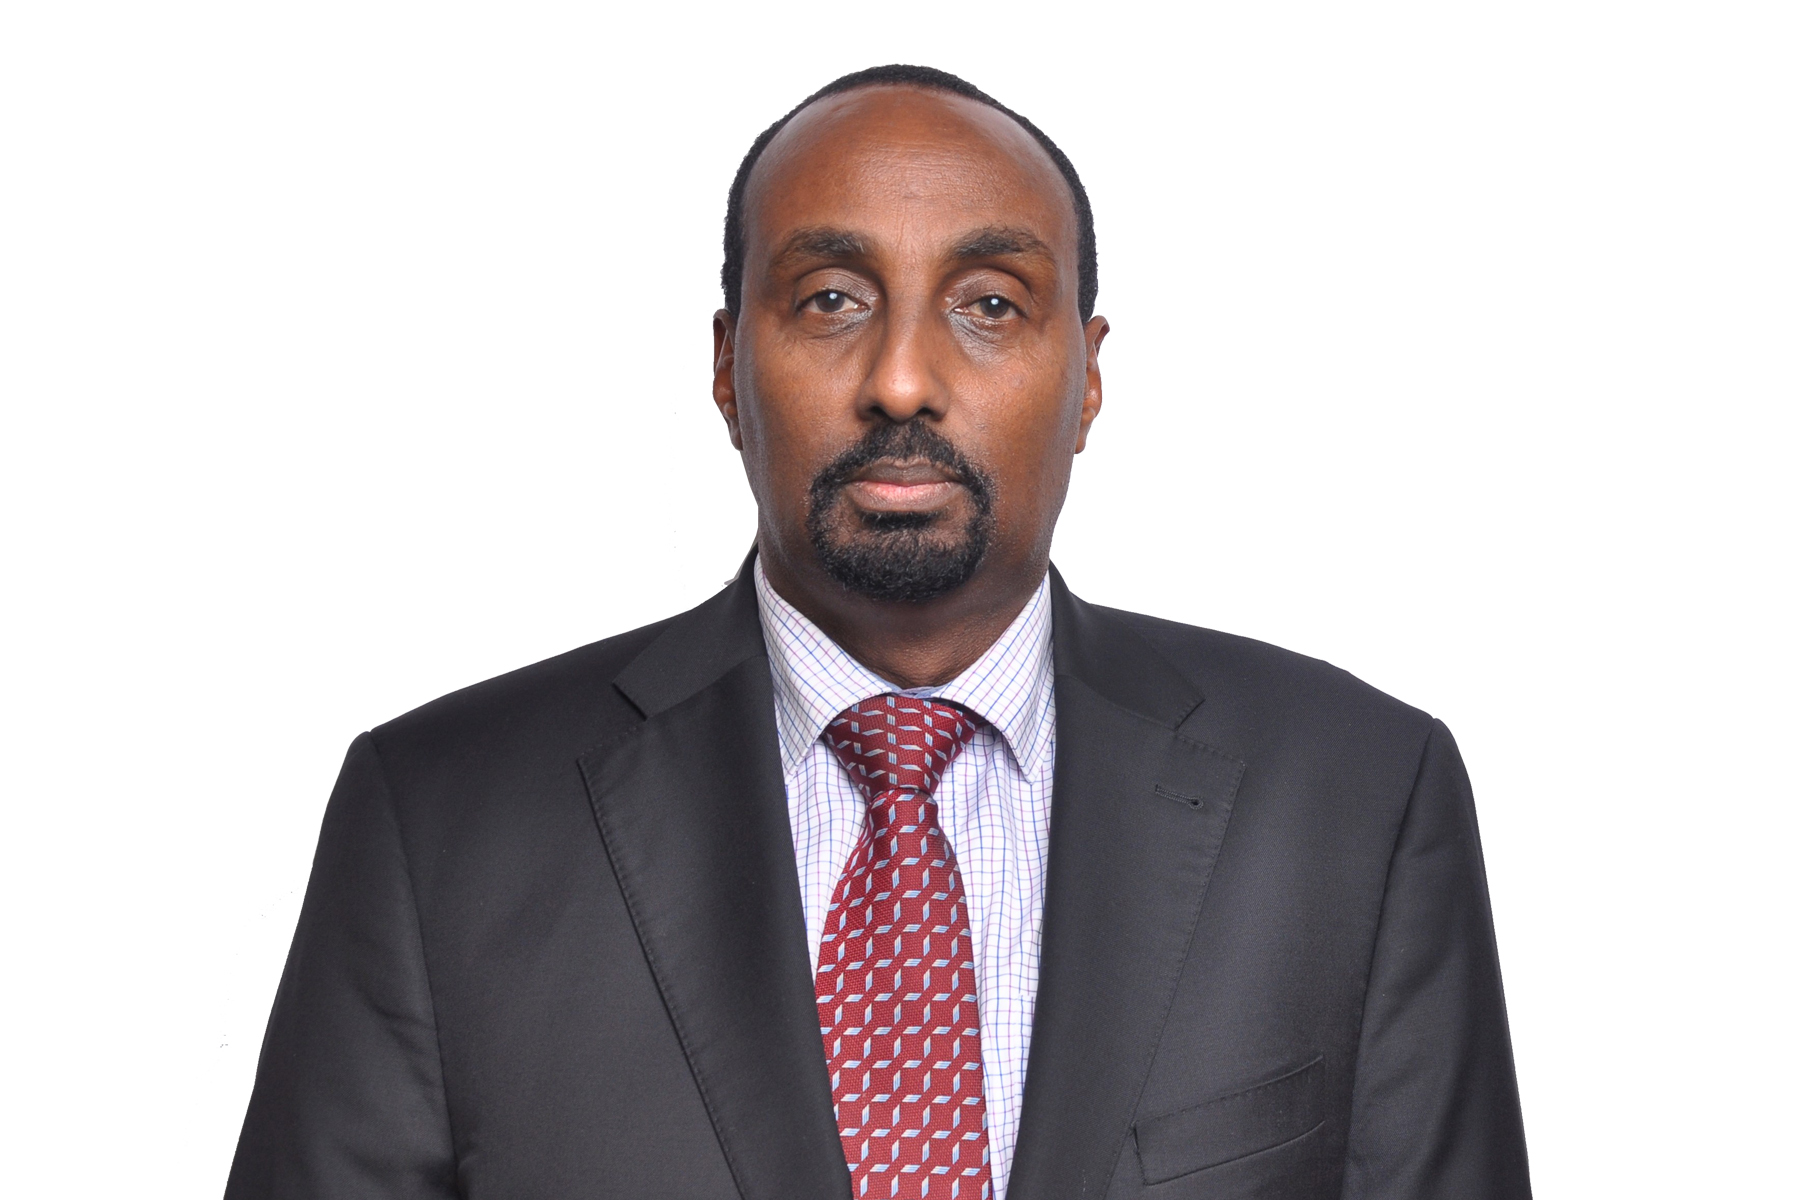 Mr. Abdi Mohamud Ahmed, MBS